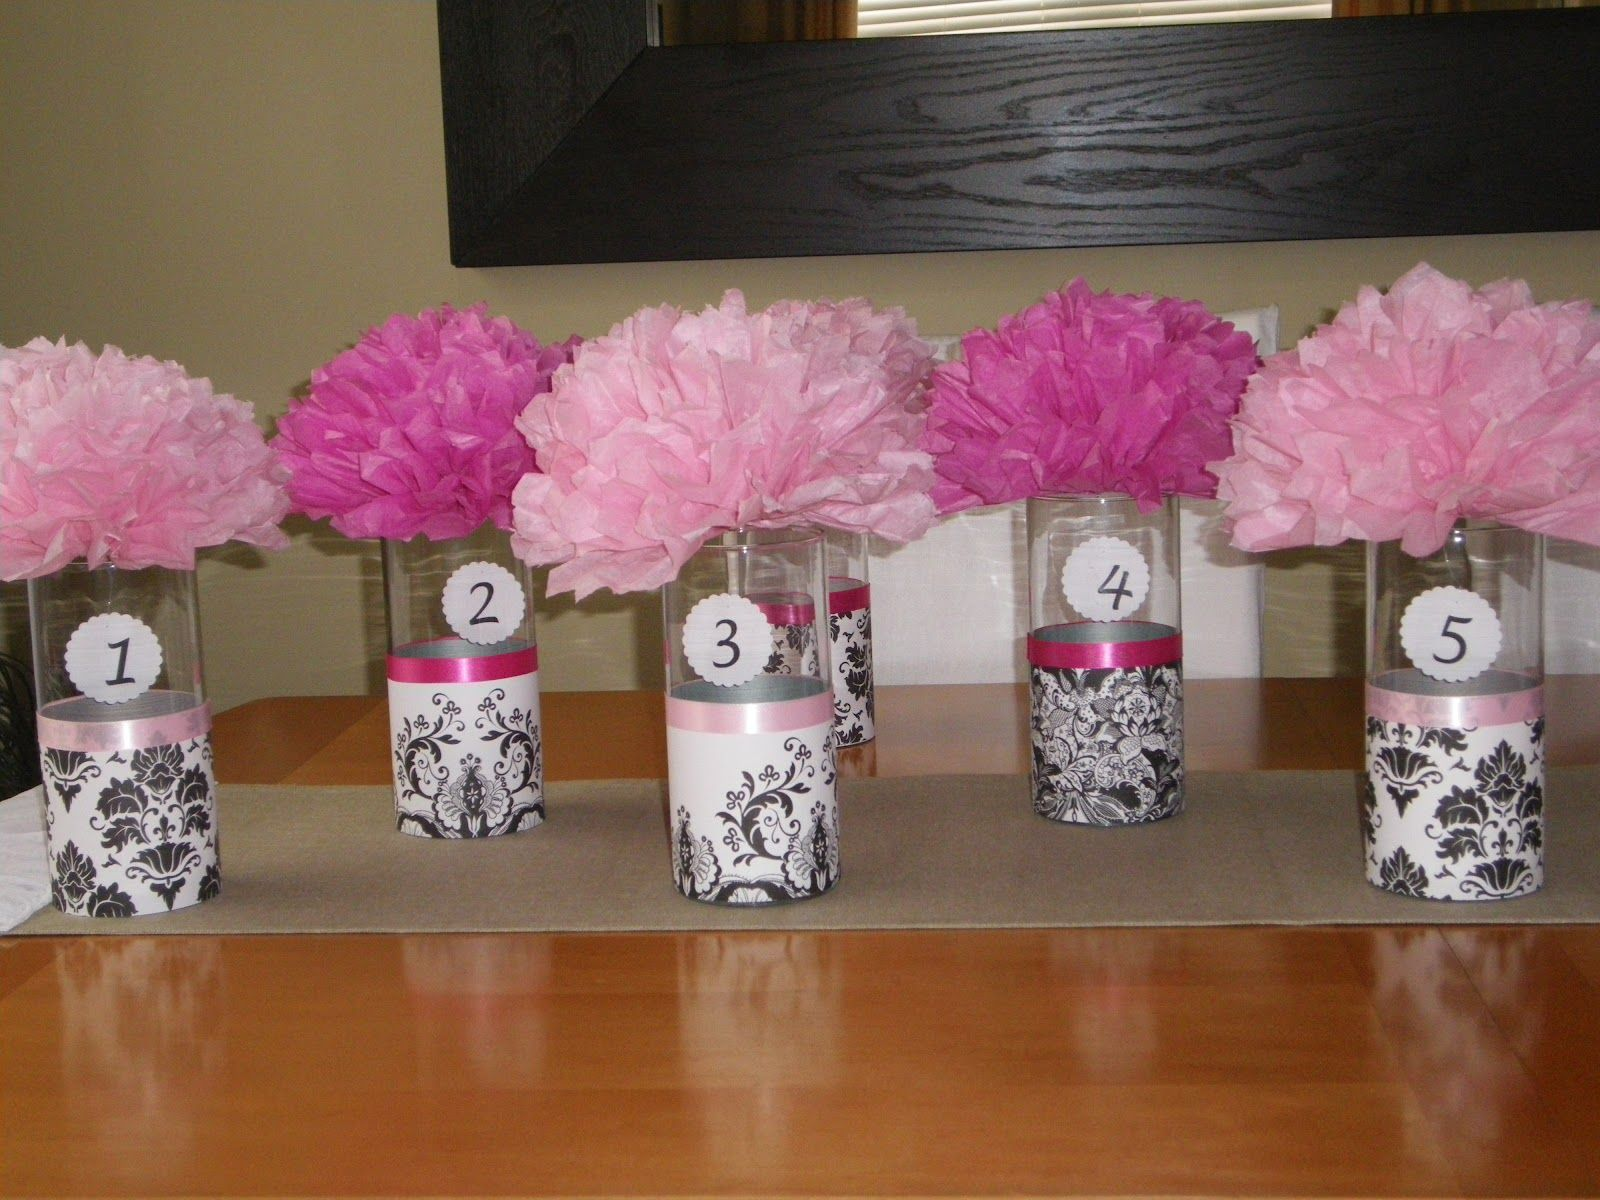 church ladies retreat ideas as i am preparing to do centerpieces for our womens ministry